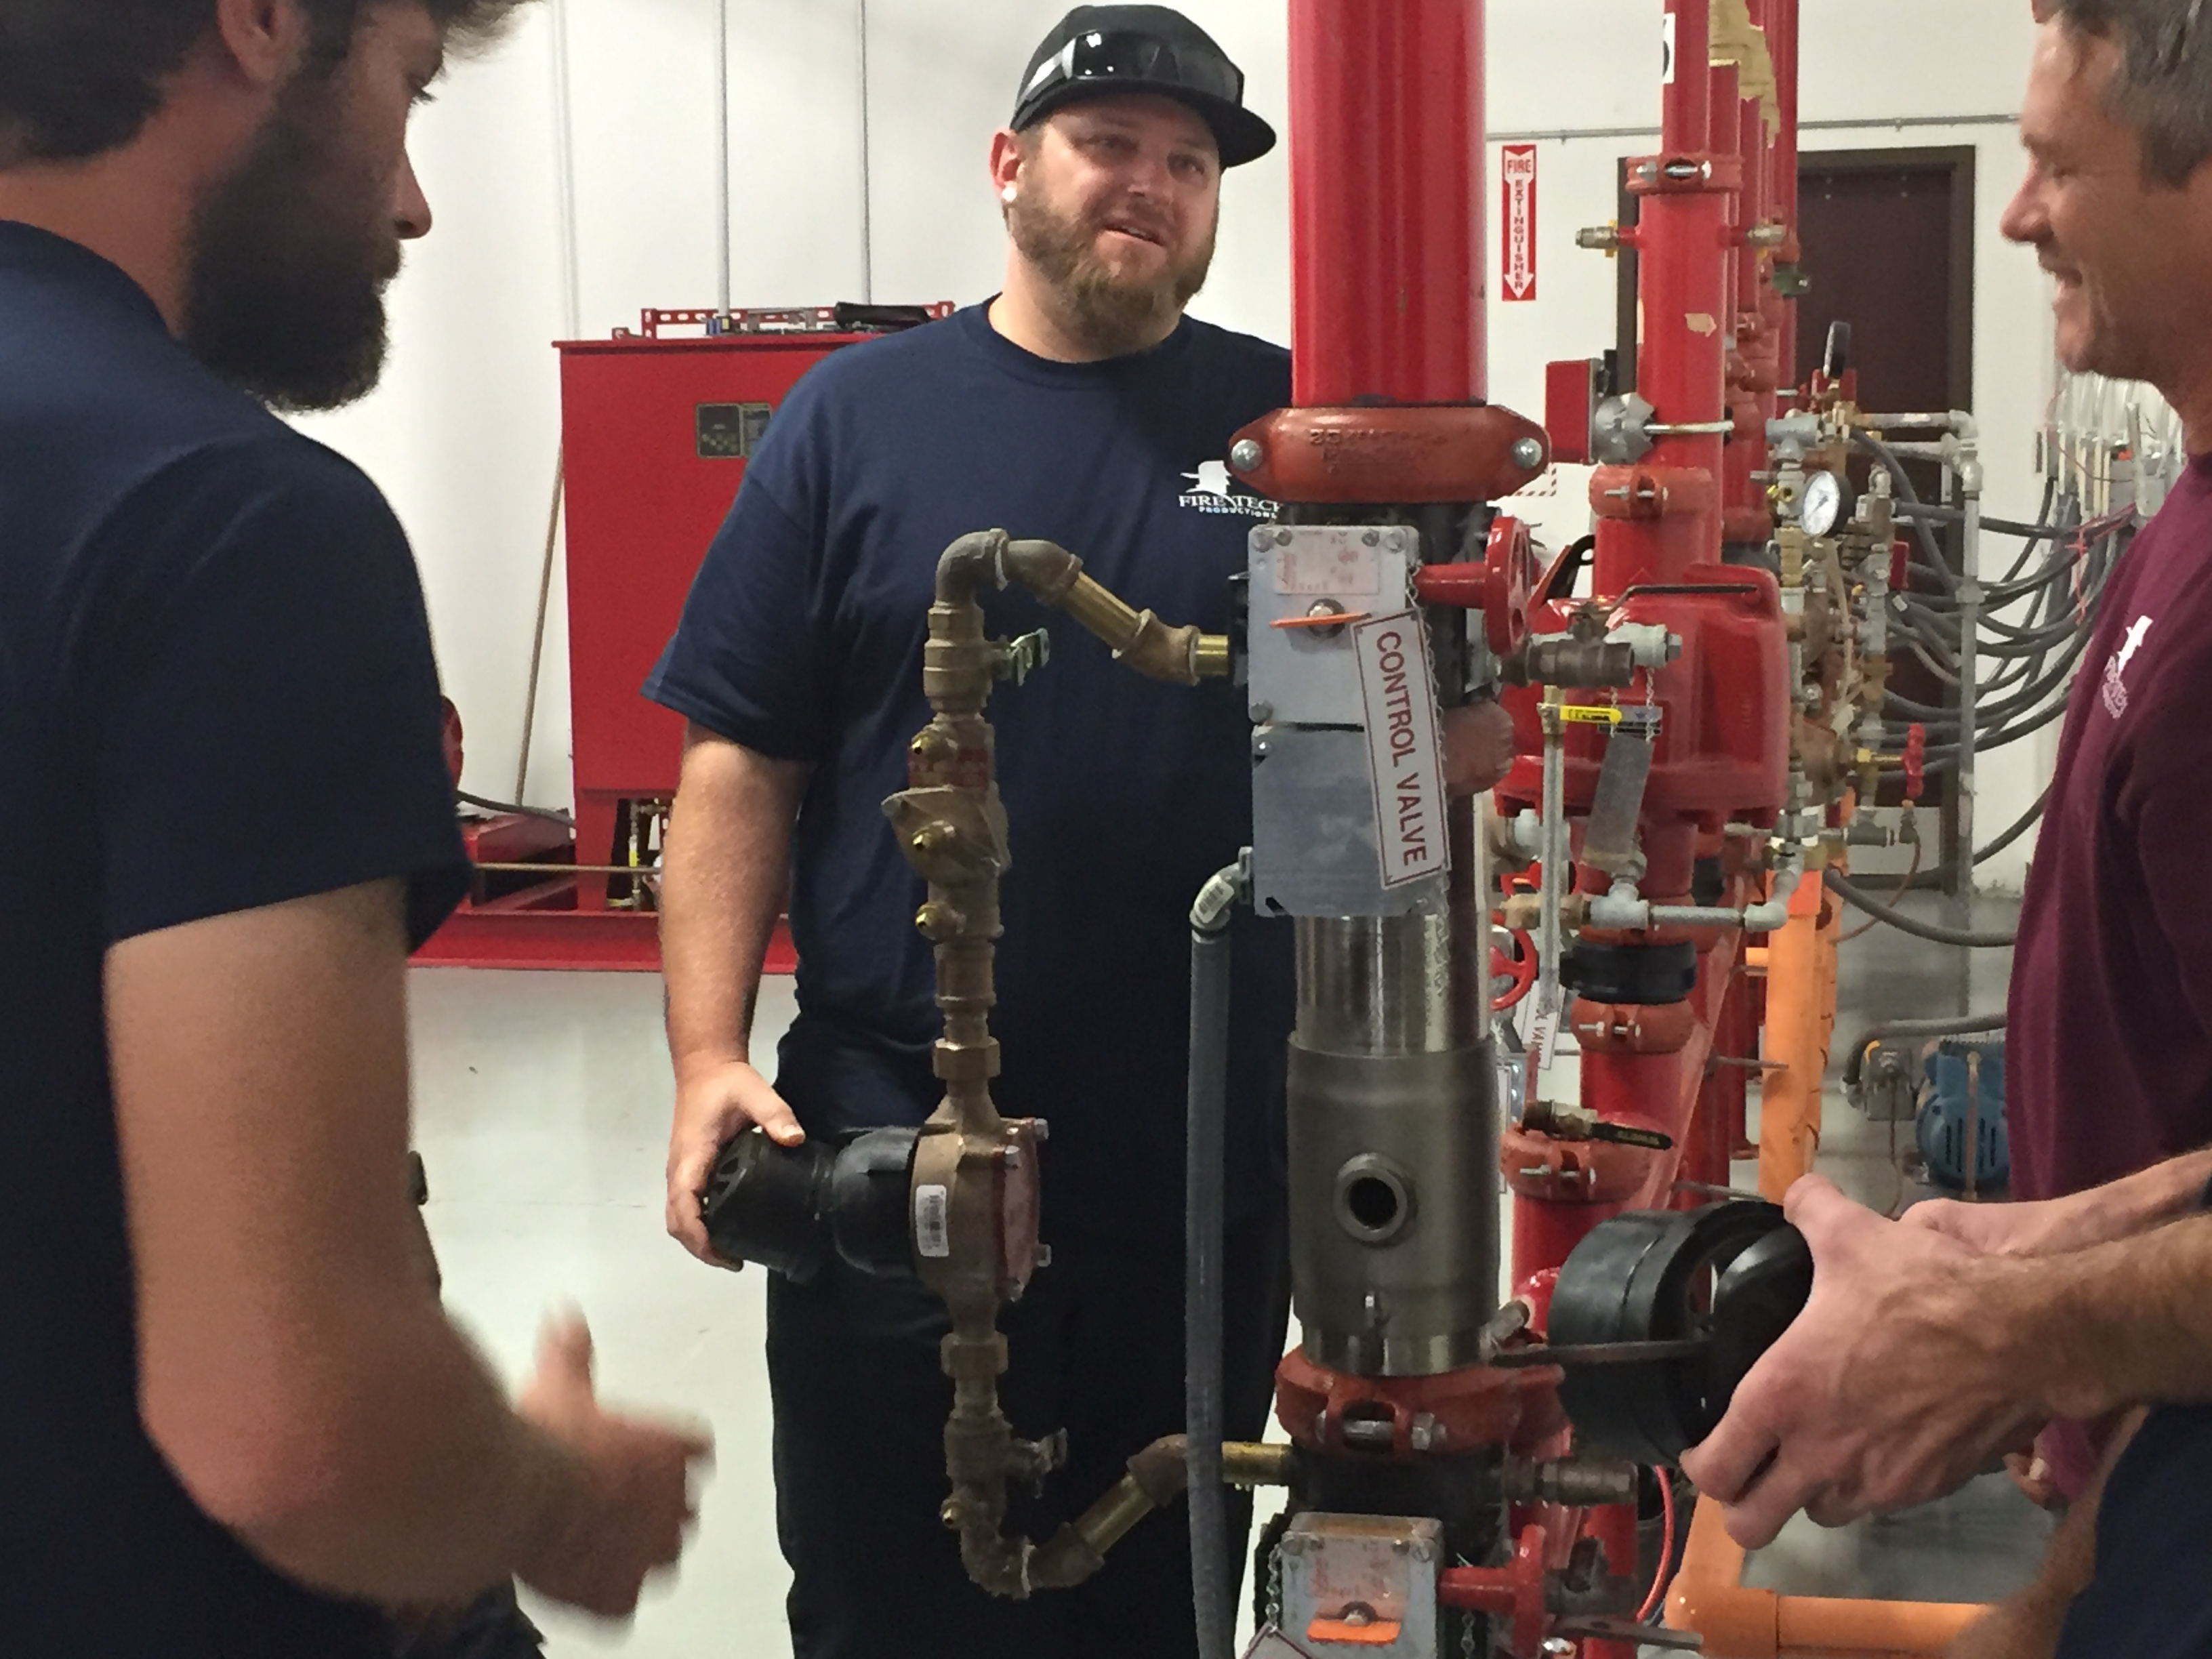 Fire Pump Inspection Training from Fire Tech Productions